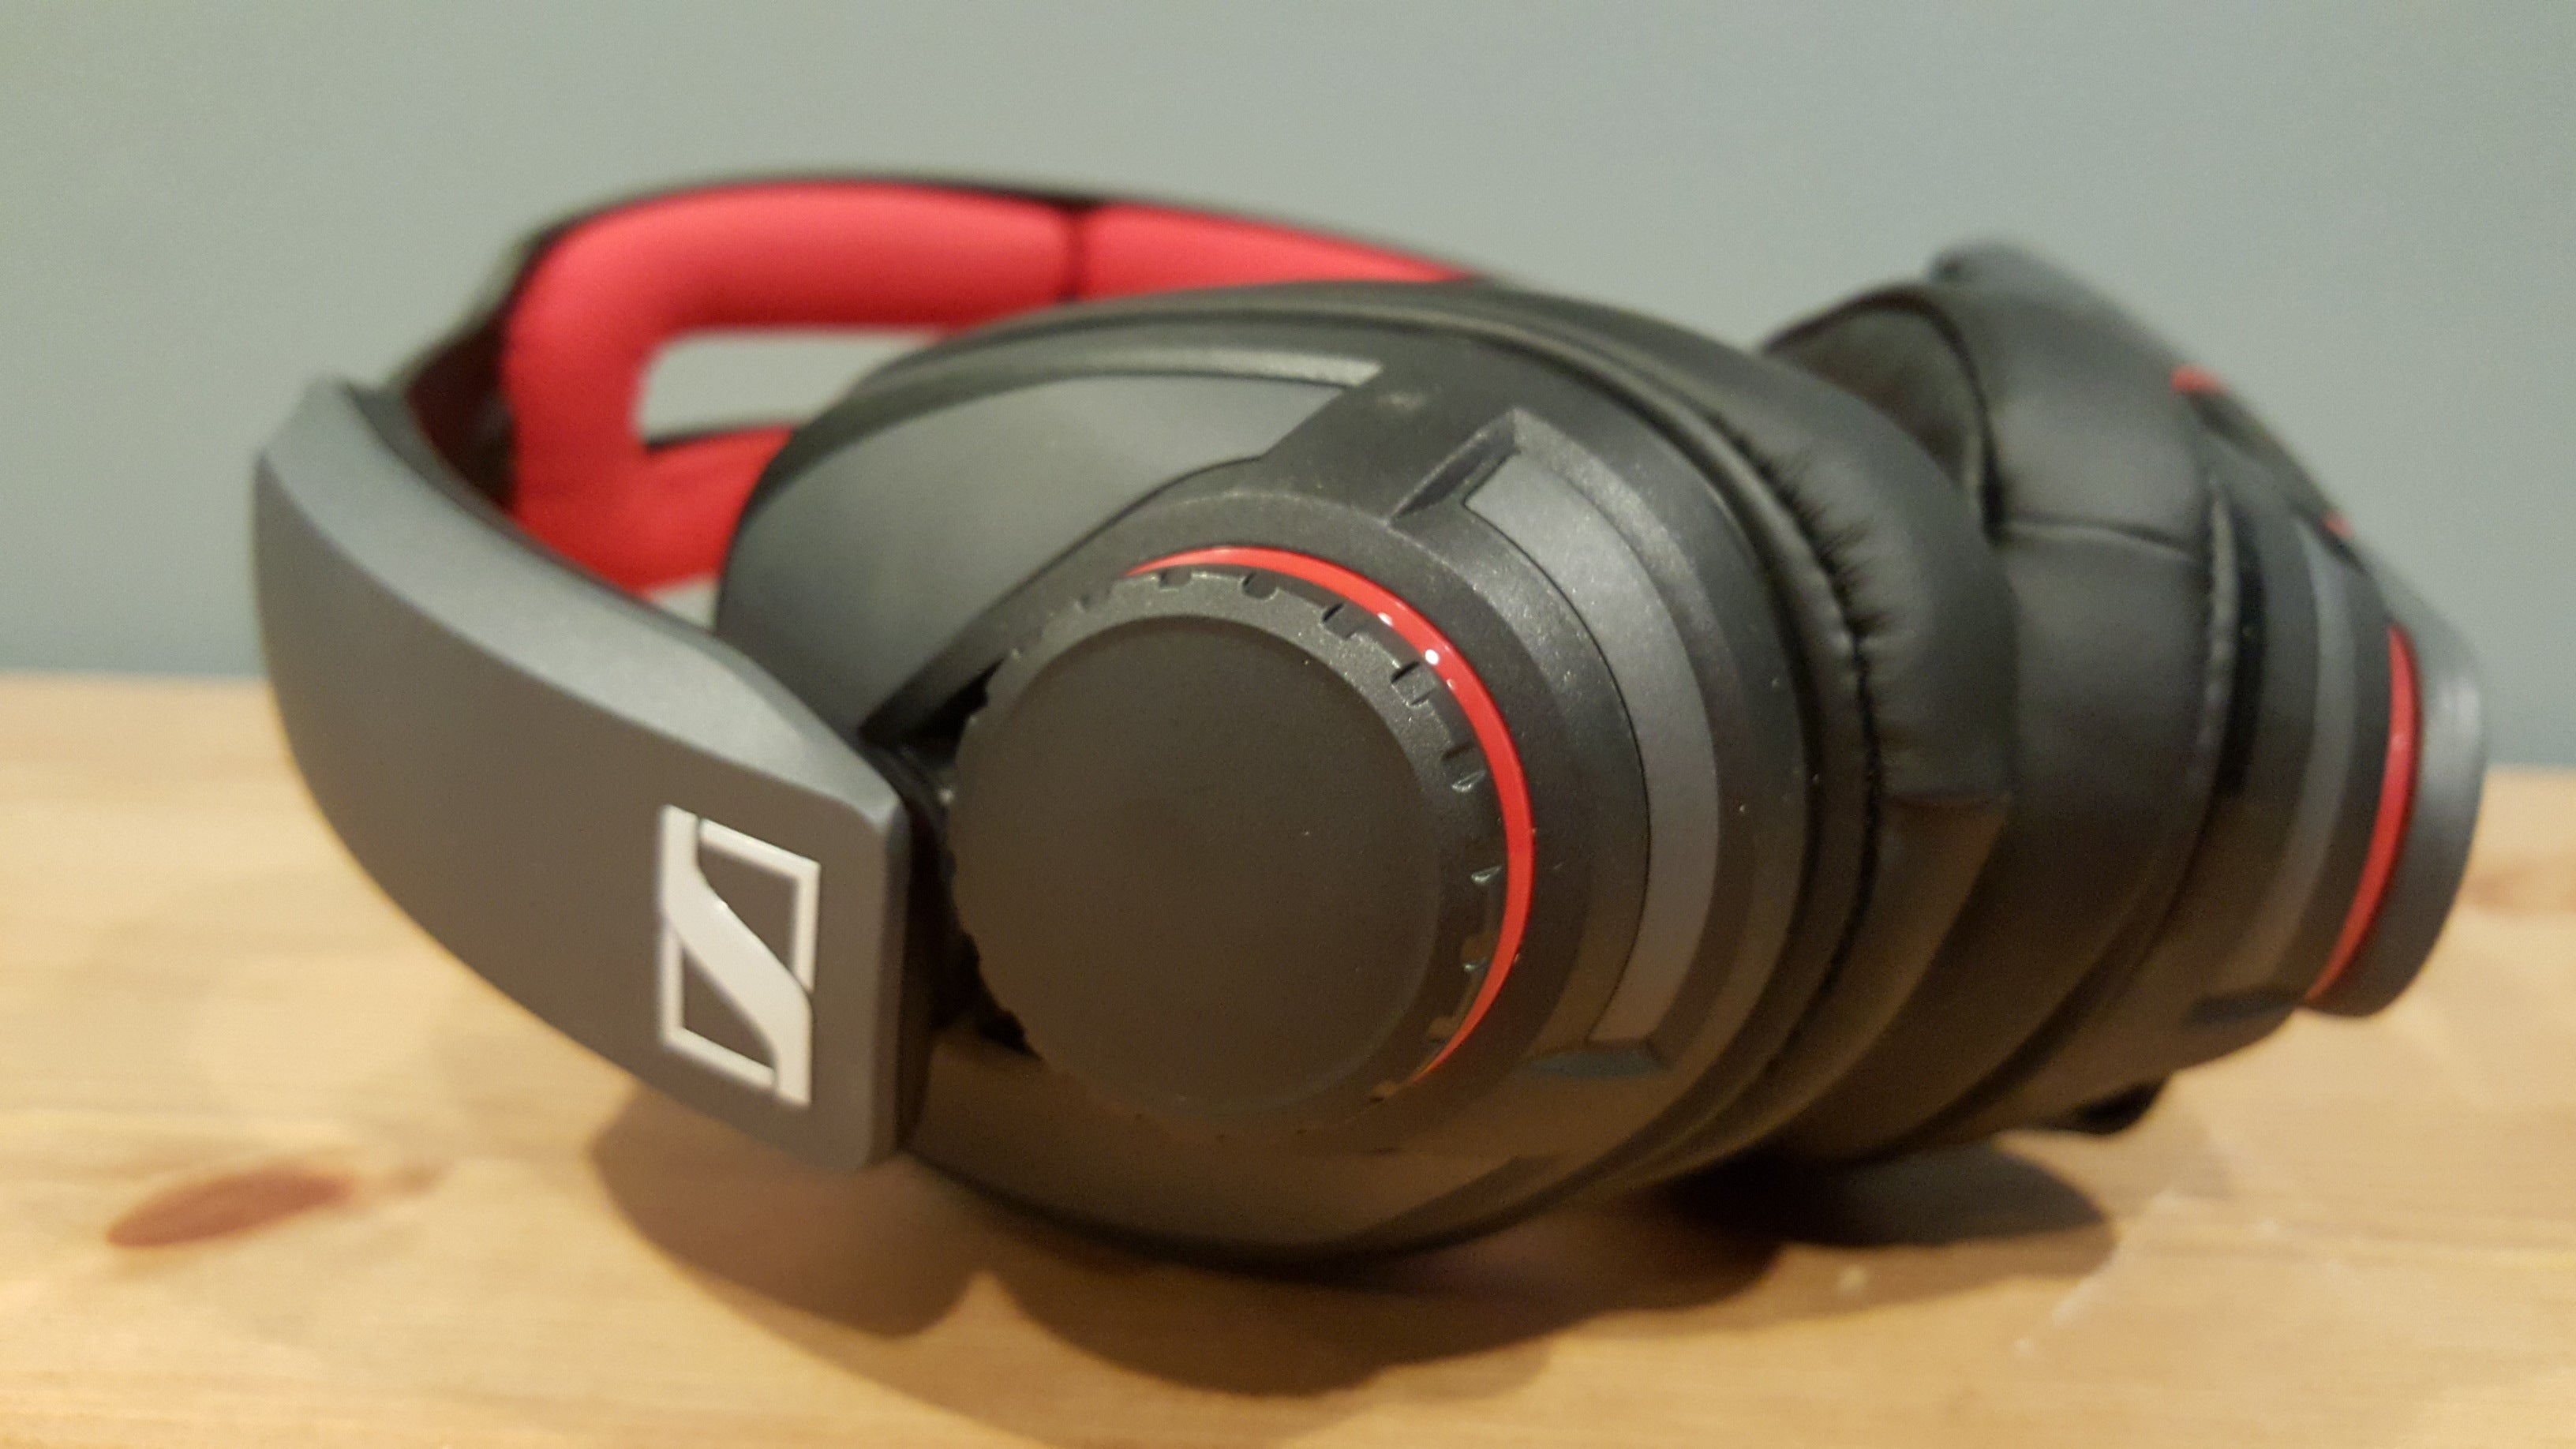 Sennheiser GSP 350 review: A gaming headset that sounds a lot better